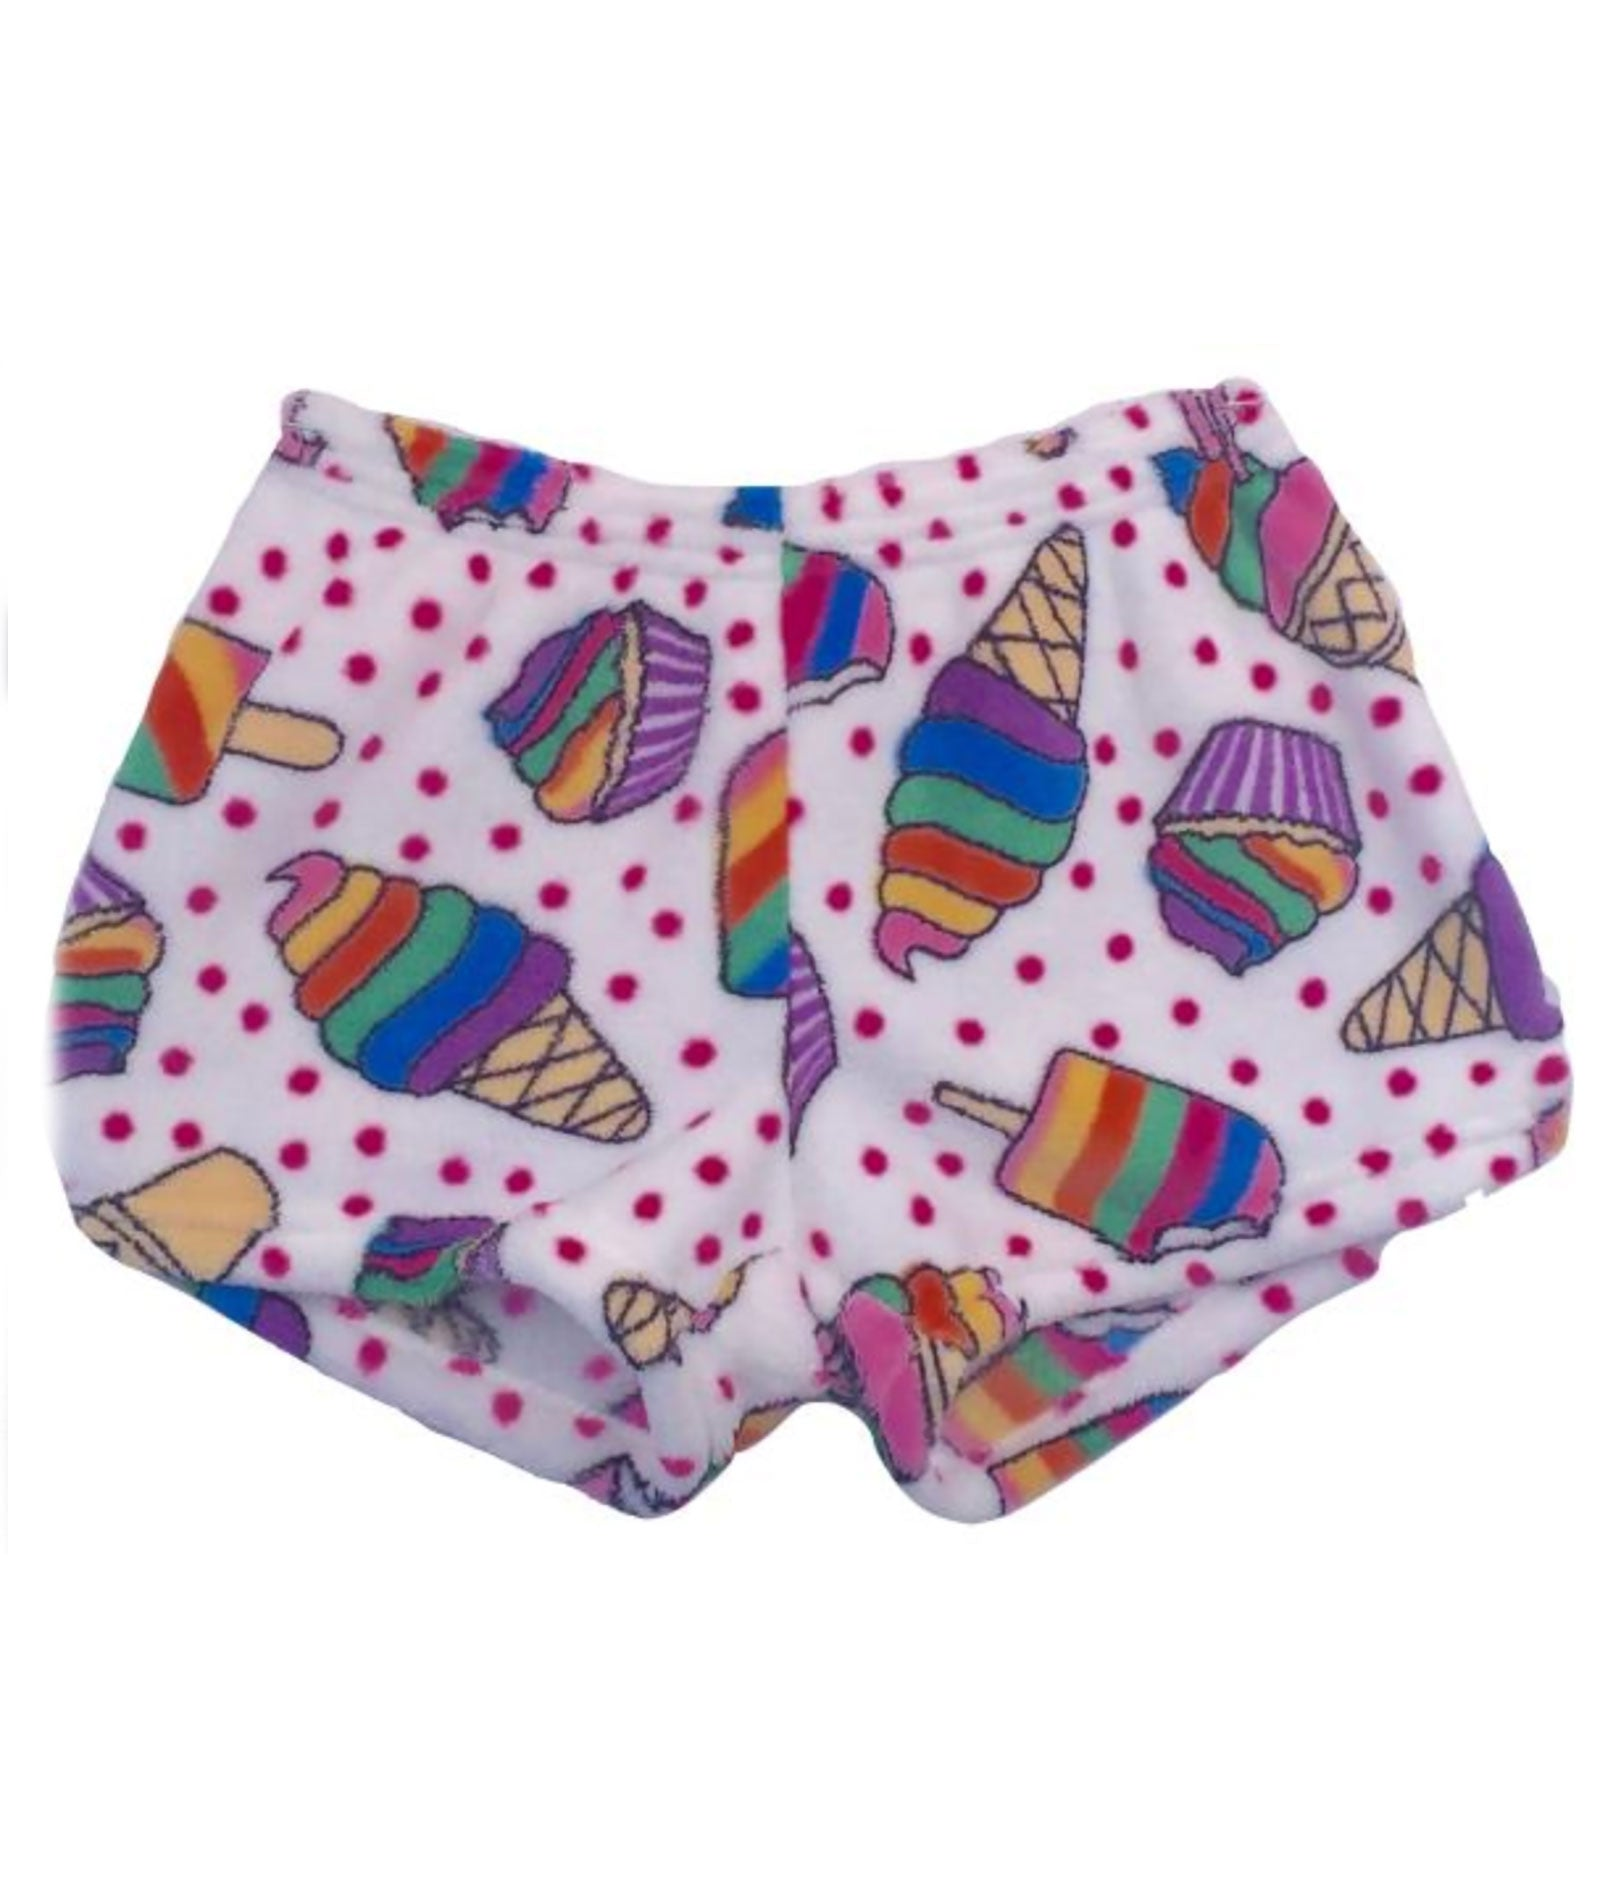 Made with Love and Kisses Girls Dessert Shorts - Frankie's on the Park